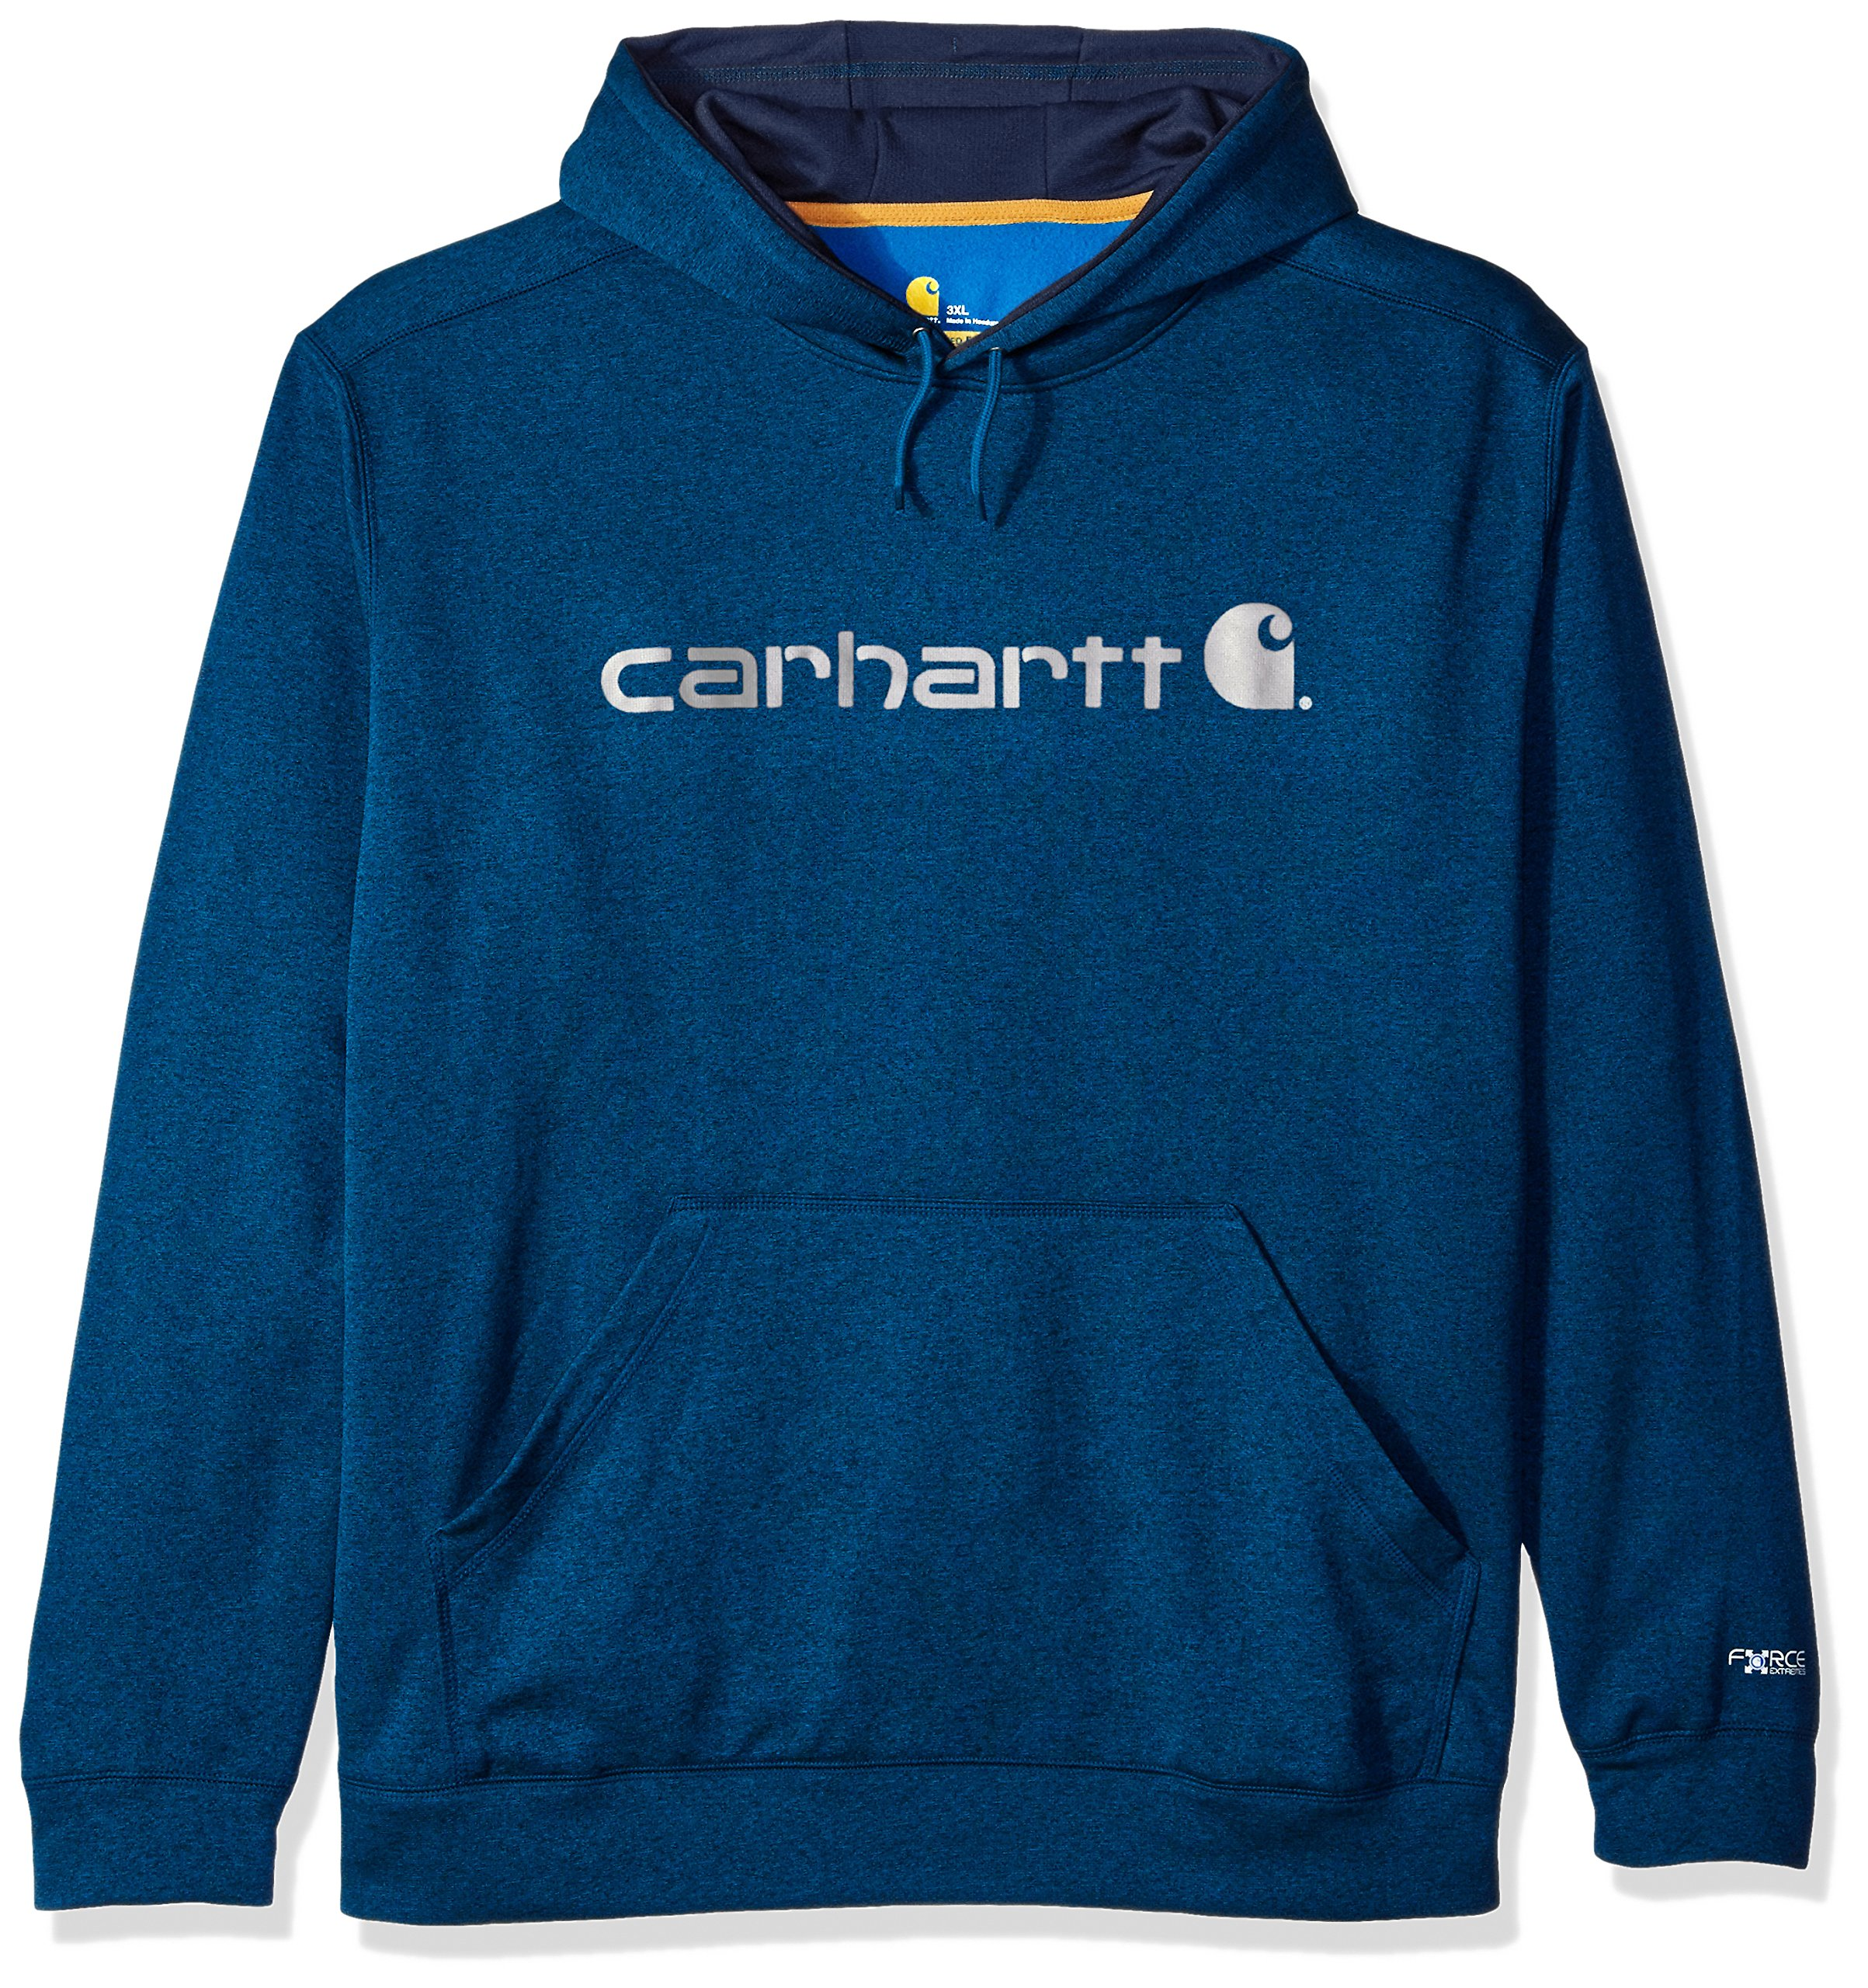 Carhartt Men's Big and Tall Force Extreme Hooded Sweatshirt (Regular and Big & Tall Sizes), Huron Heather, 4X-Large